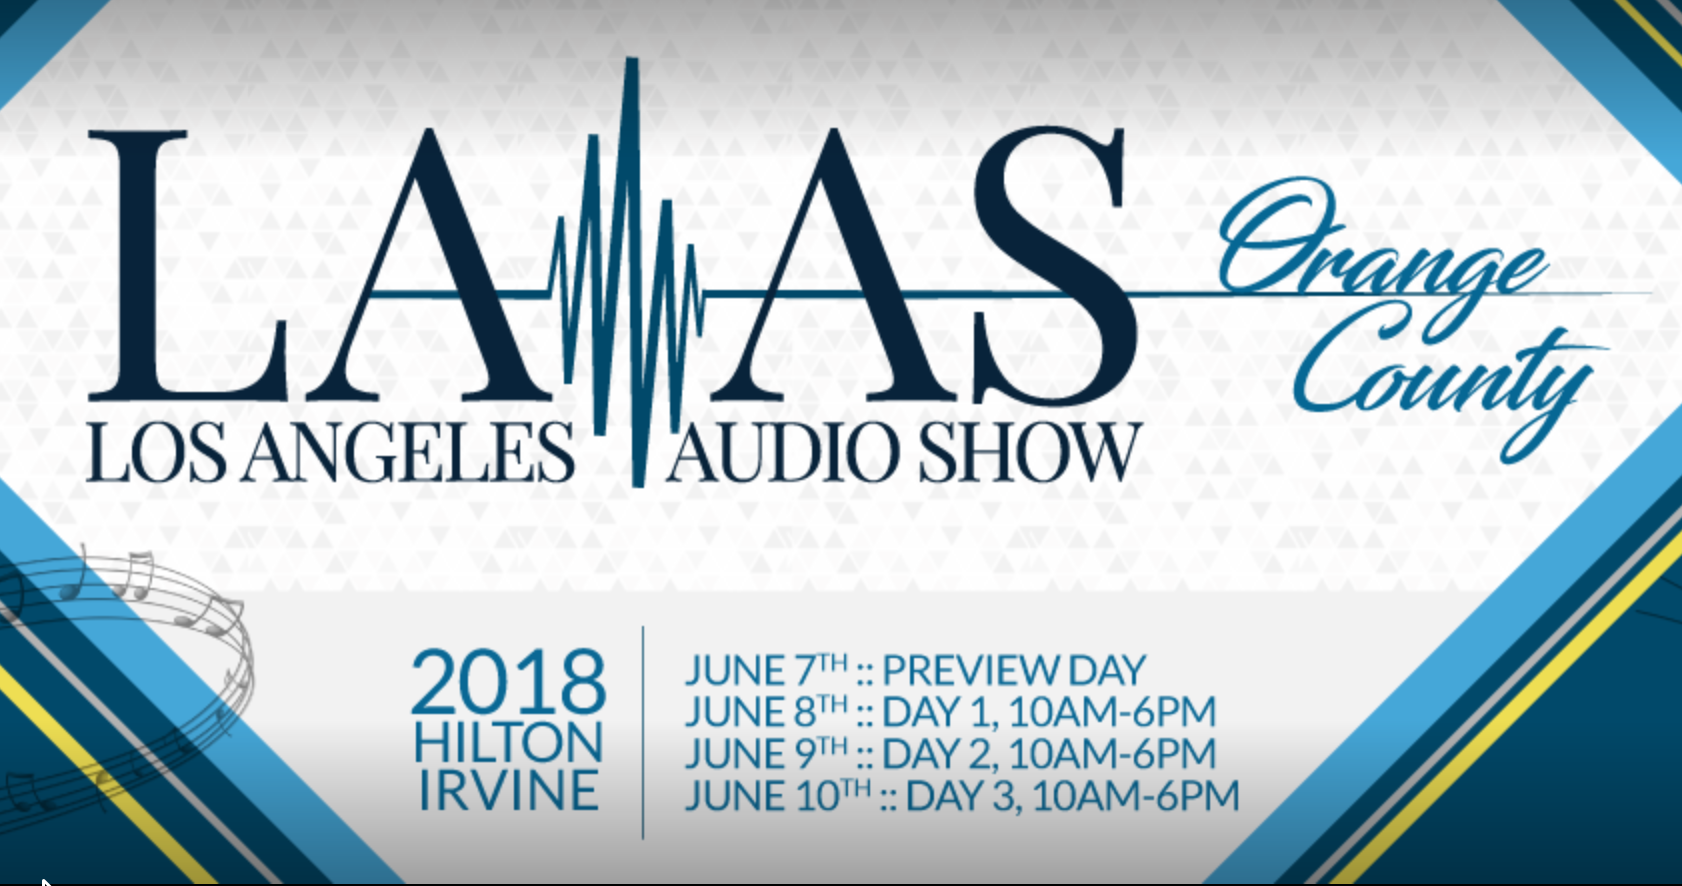 Los Angeles Audio Show 2018 Cancelled